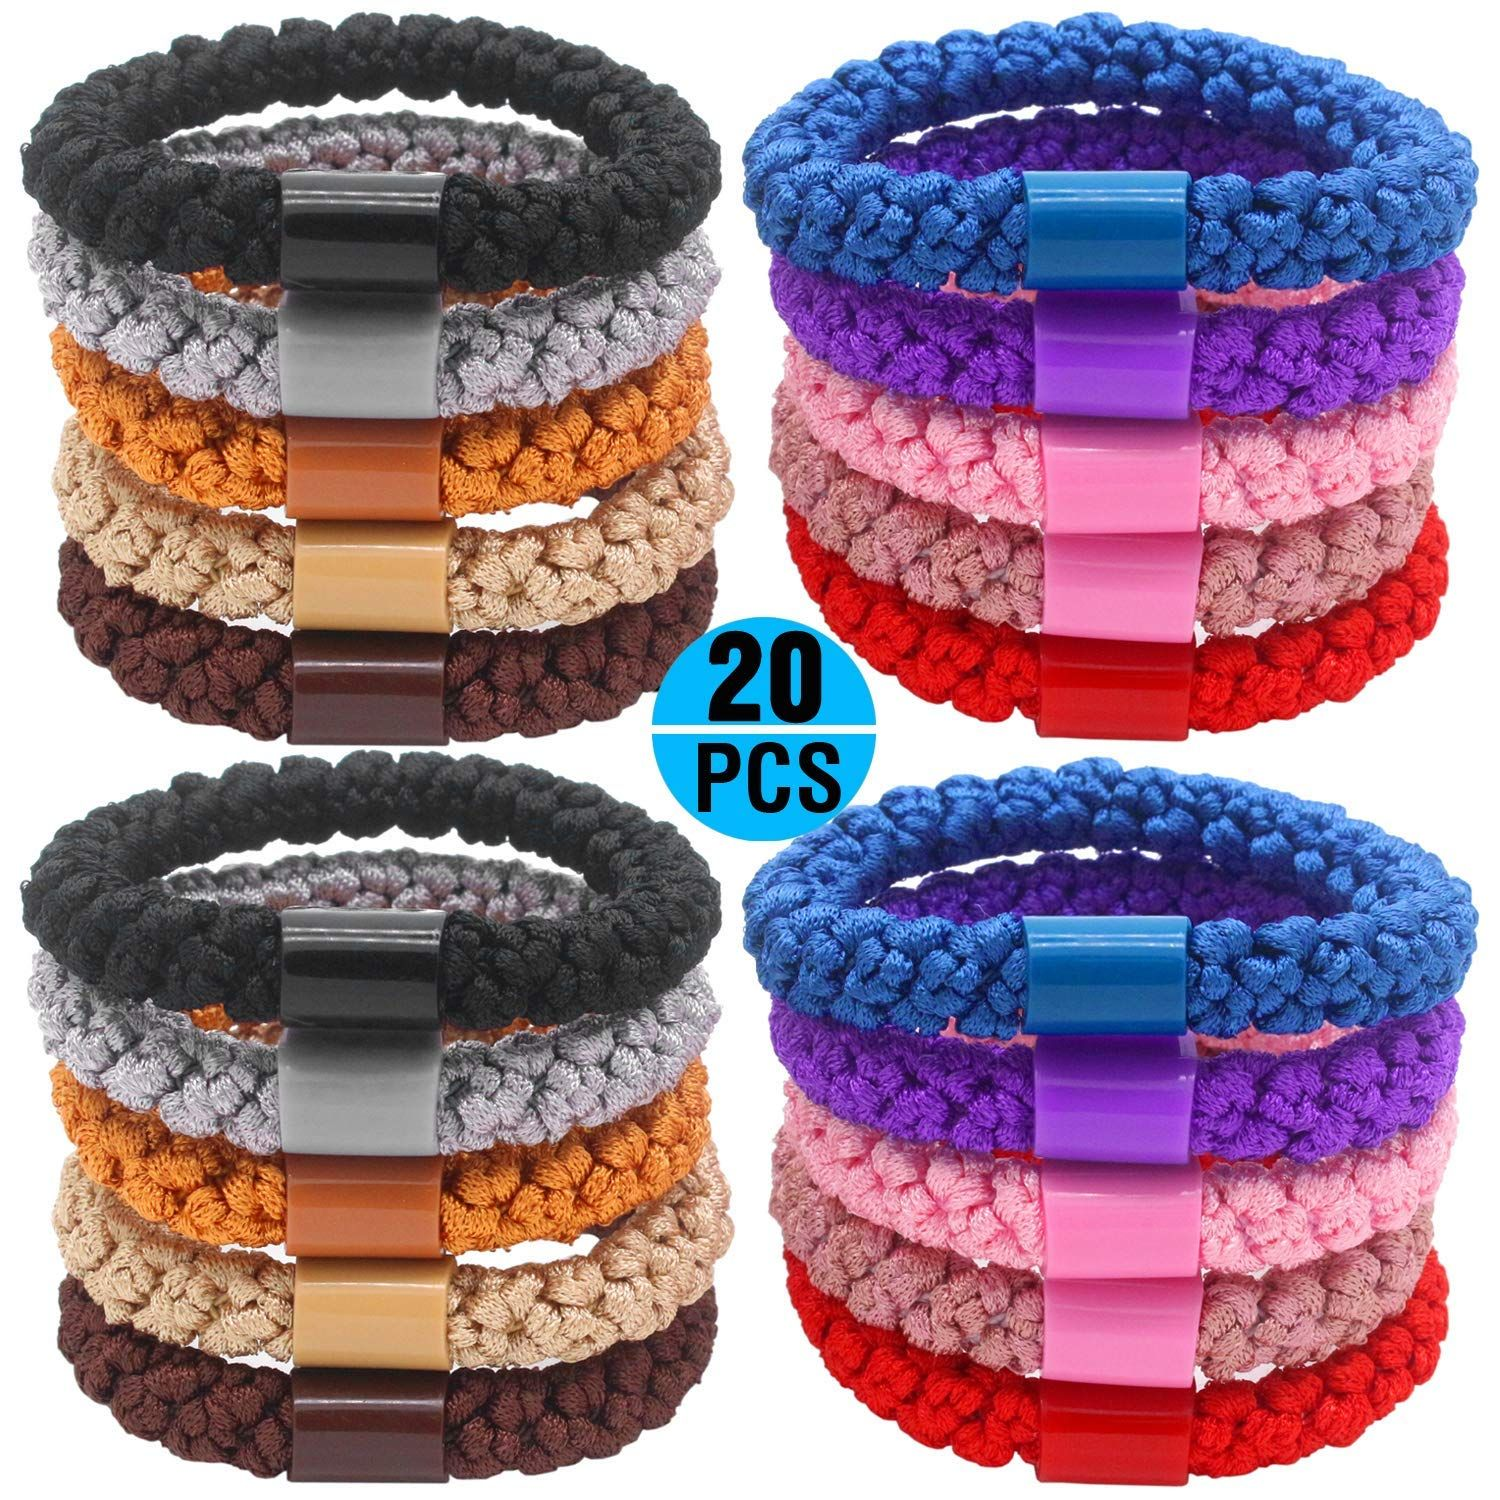 Fashion and Lifestyle 20 Pcs Large Hair Ties Pony Ponytail Holders for Thick  Hair - Stretchy Elastics Hair Bands Boutique Woven Ropes for Women and  Girls 71d93a903d1